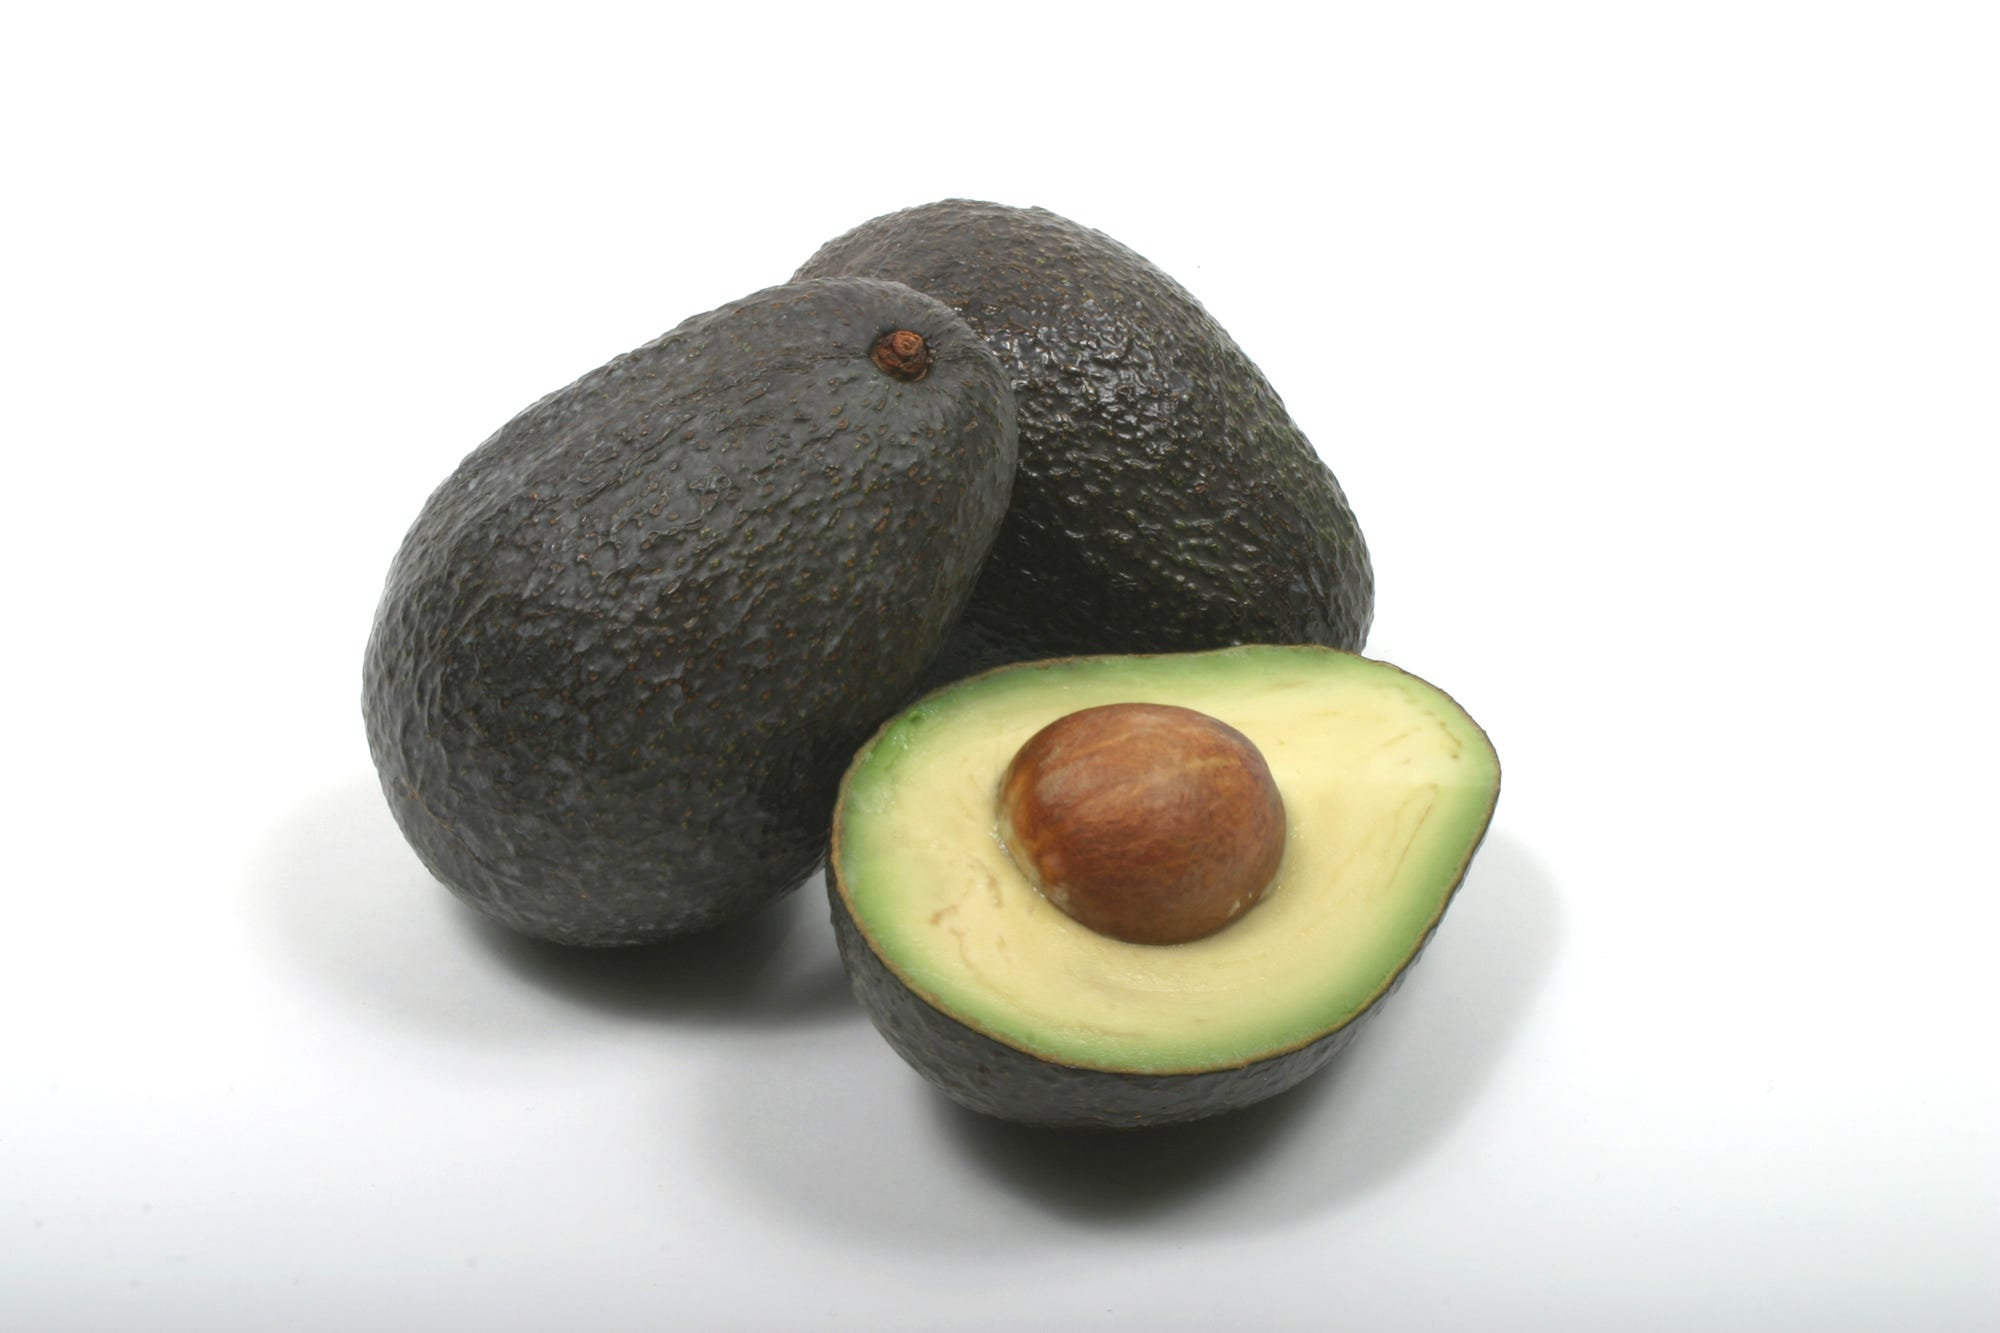 California company recalls avocados as precaution against listeria: Is your fruit safe?